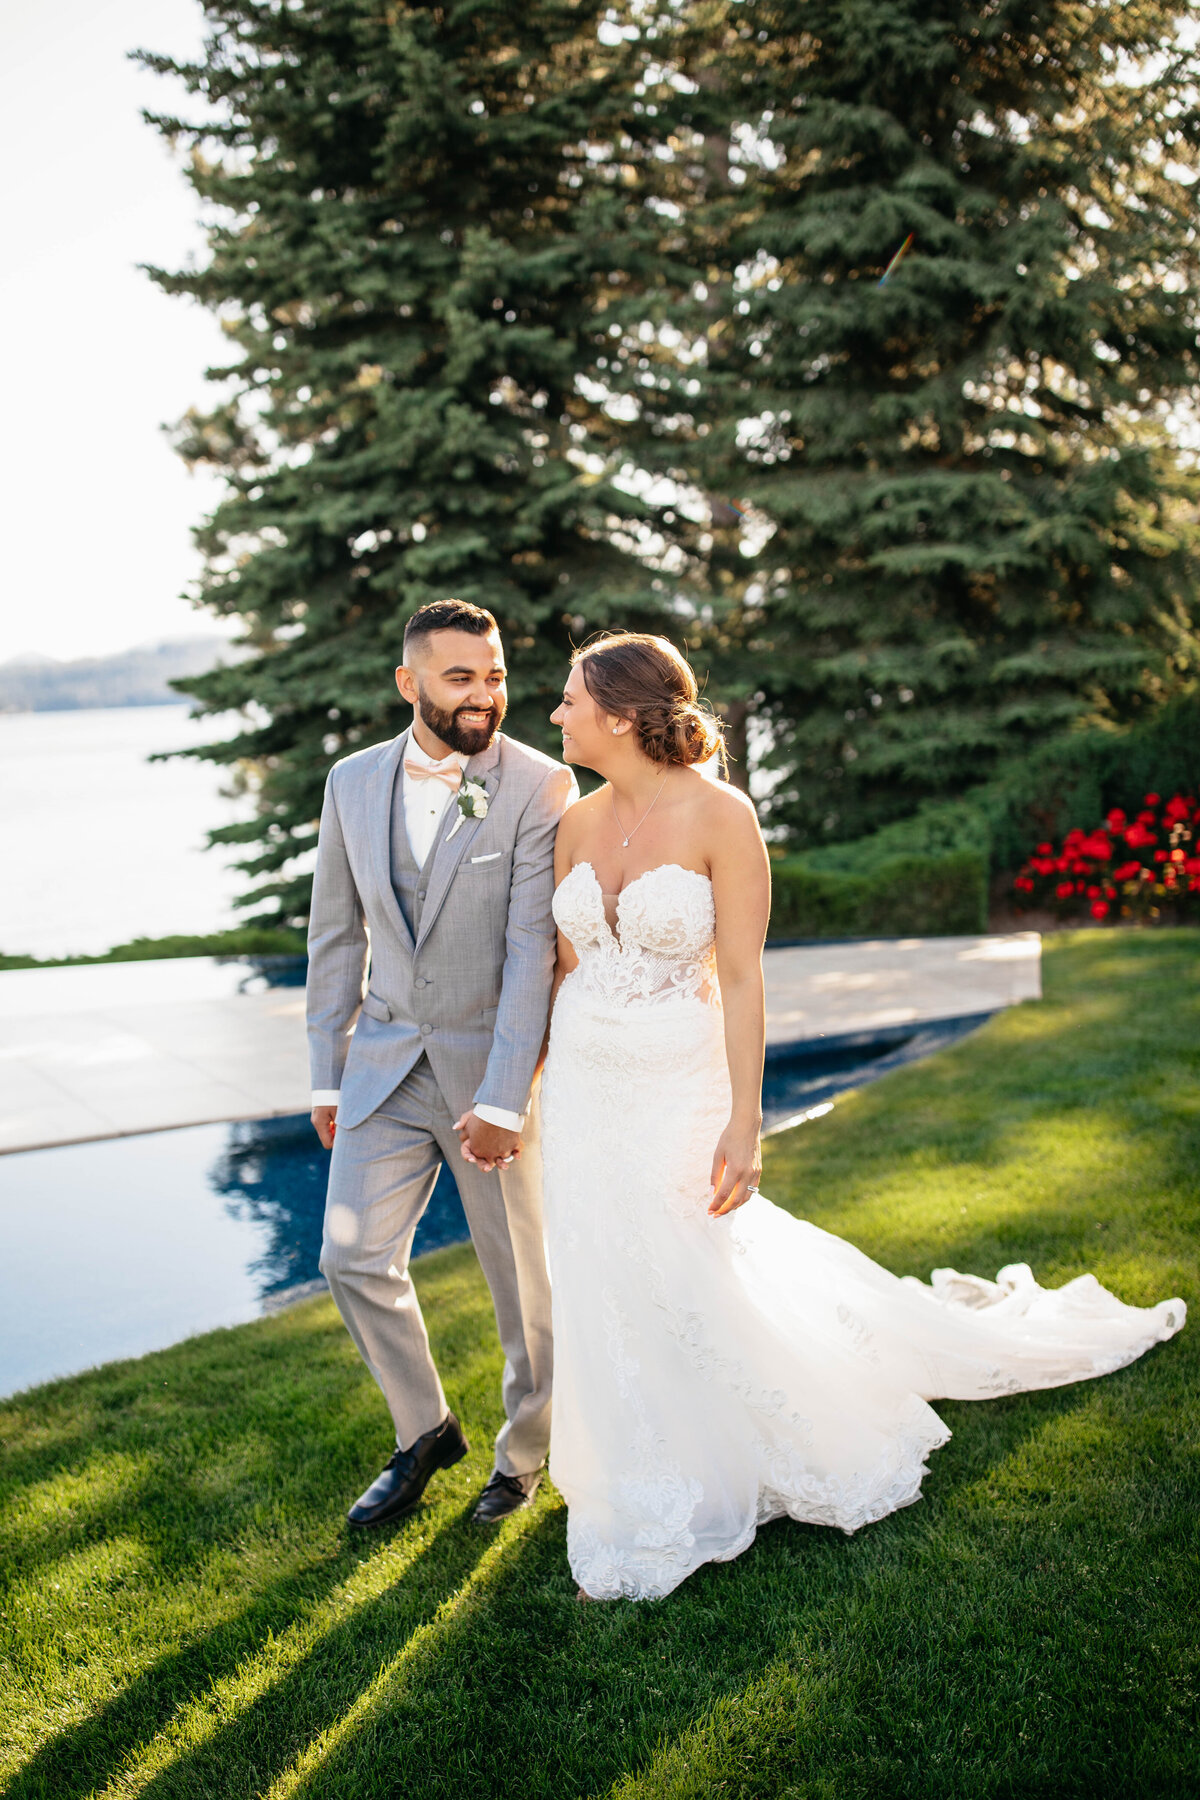 Top Wedding Photographer in Coeur d'Alene Idaho - Clara Jay Photo